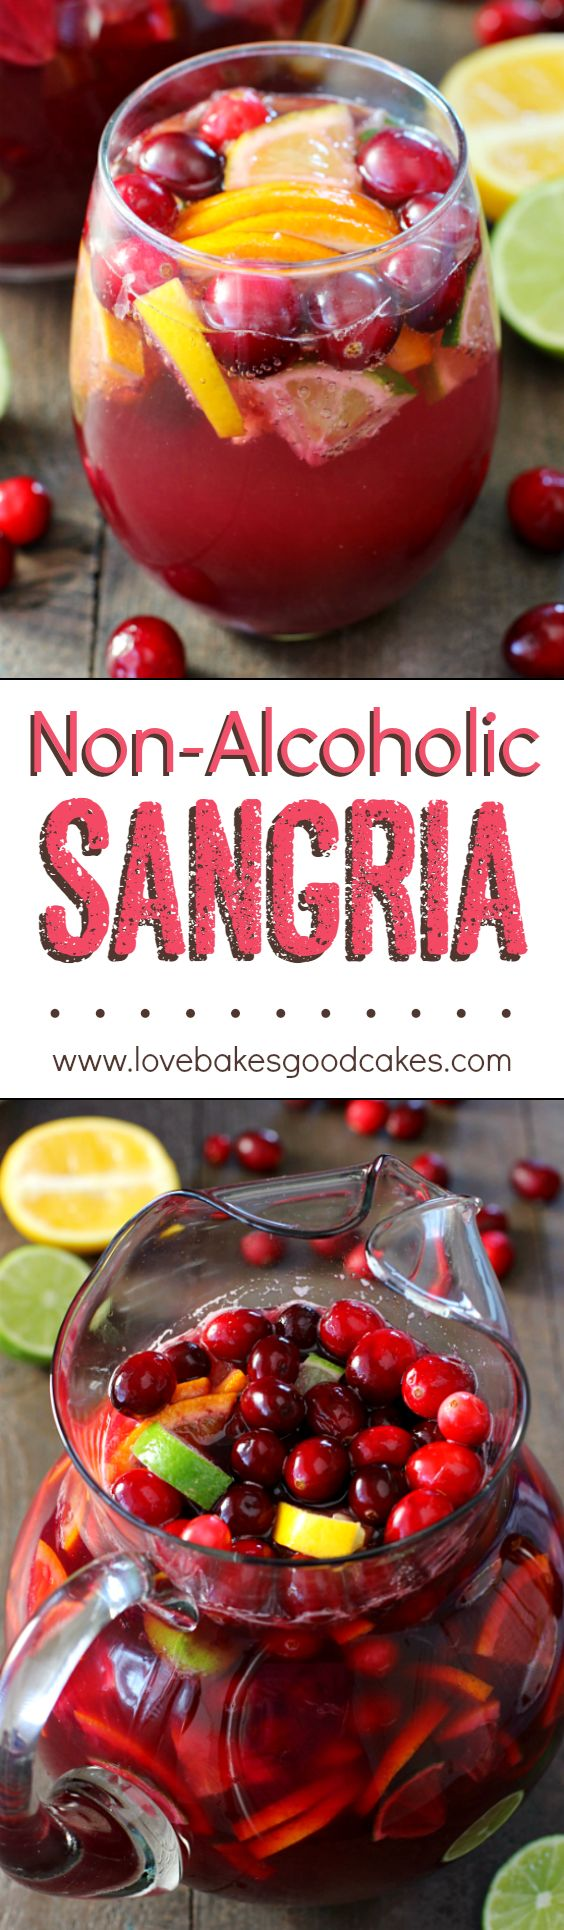 Non-Alcoholic Sangria Drink Recipe via Love Bakes Good Cakes - This is SOOOOO GOOD!! I'm saving this for all of our parties and holidays! The BEST Easy Non-Alcoholic Drinks Recipes - Creative Mocktails and Family Friendly, Alcohol-Free, Big Batch Party Beverages for a Crowd! #mocktails #virgindrinks #alcoholfreedrinks #nonalcoholicdrinks #familyfriendlydrinks #partypunch #partydrinks #newyearseve #partydrinkrecipes